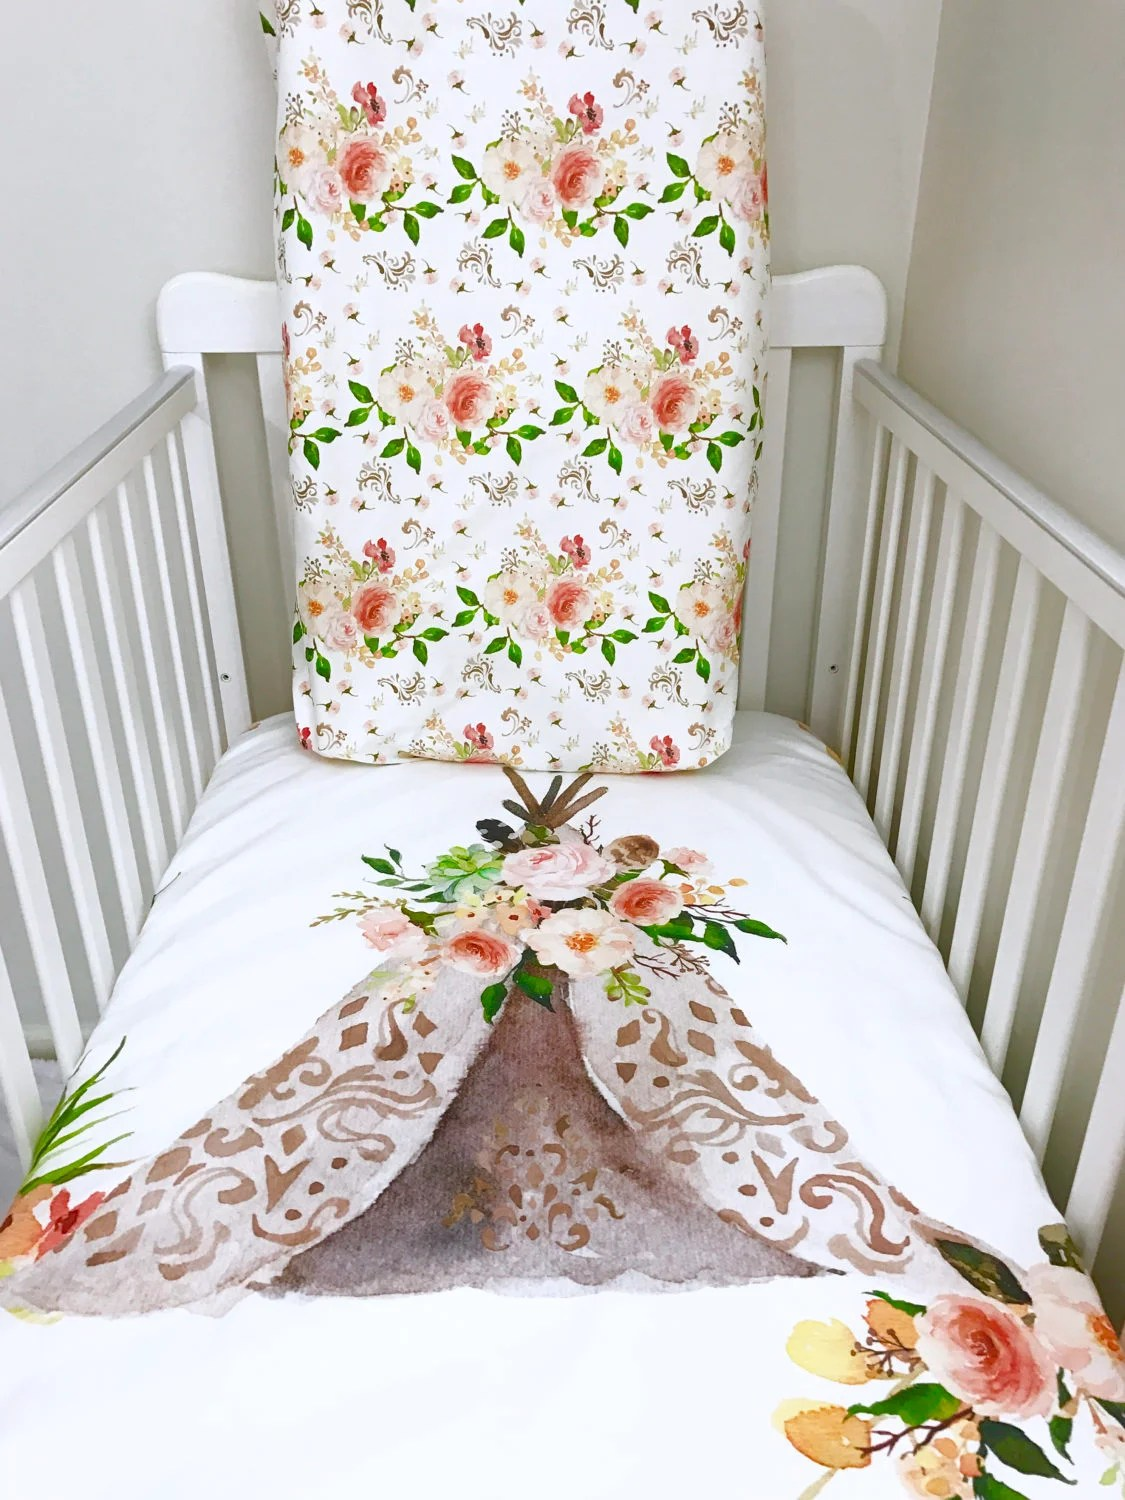 Little Oasis Crib Sheets Give A Nursery Classic Style Our